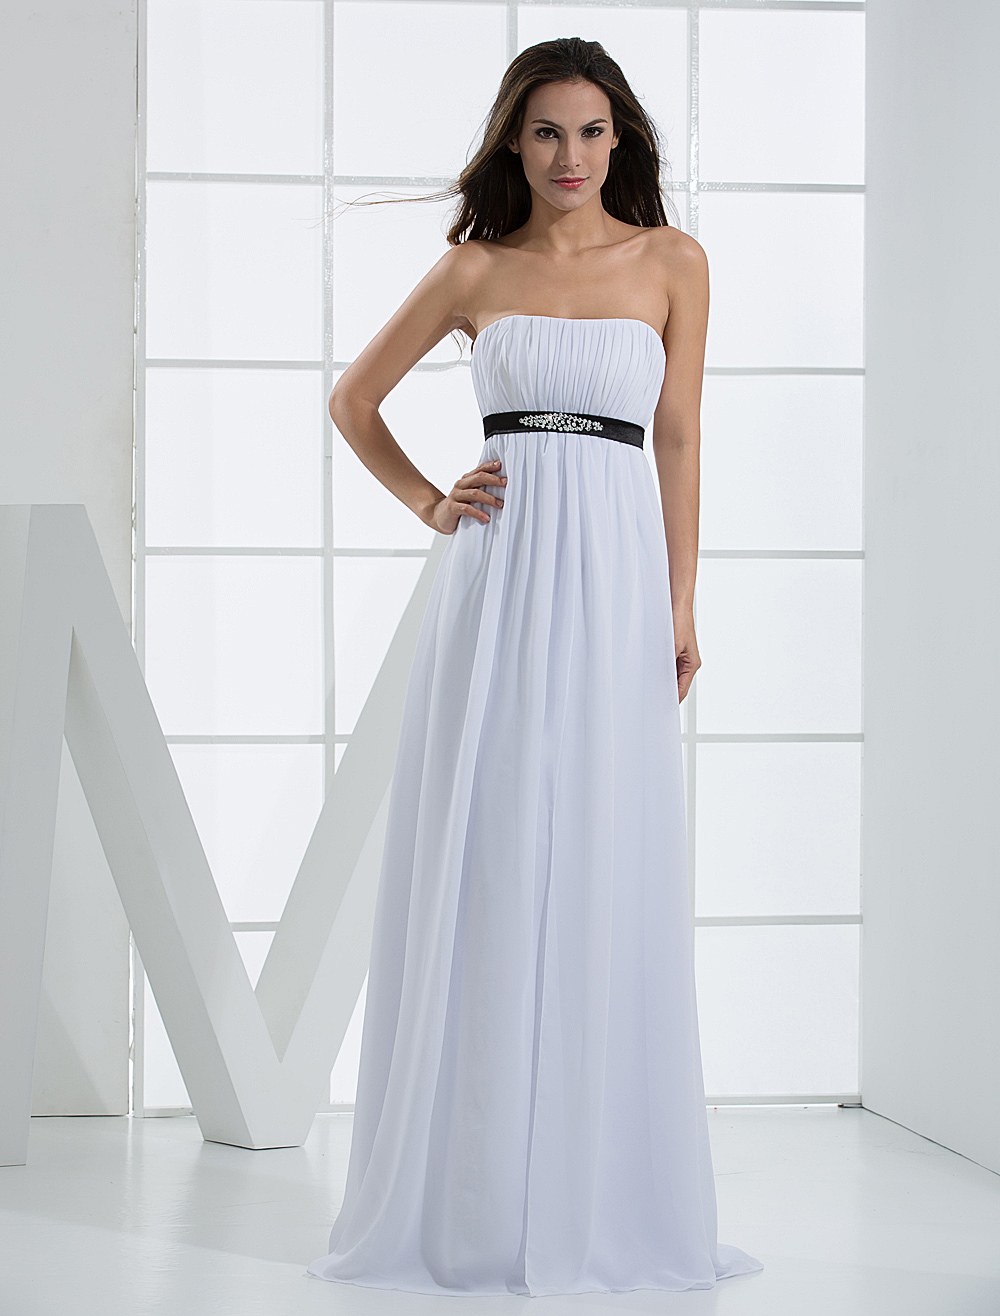 White Evening Dress Strapless Sash Beaded Ruched Chiffon Dress ...